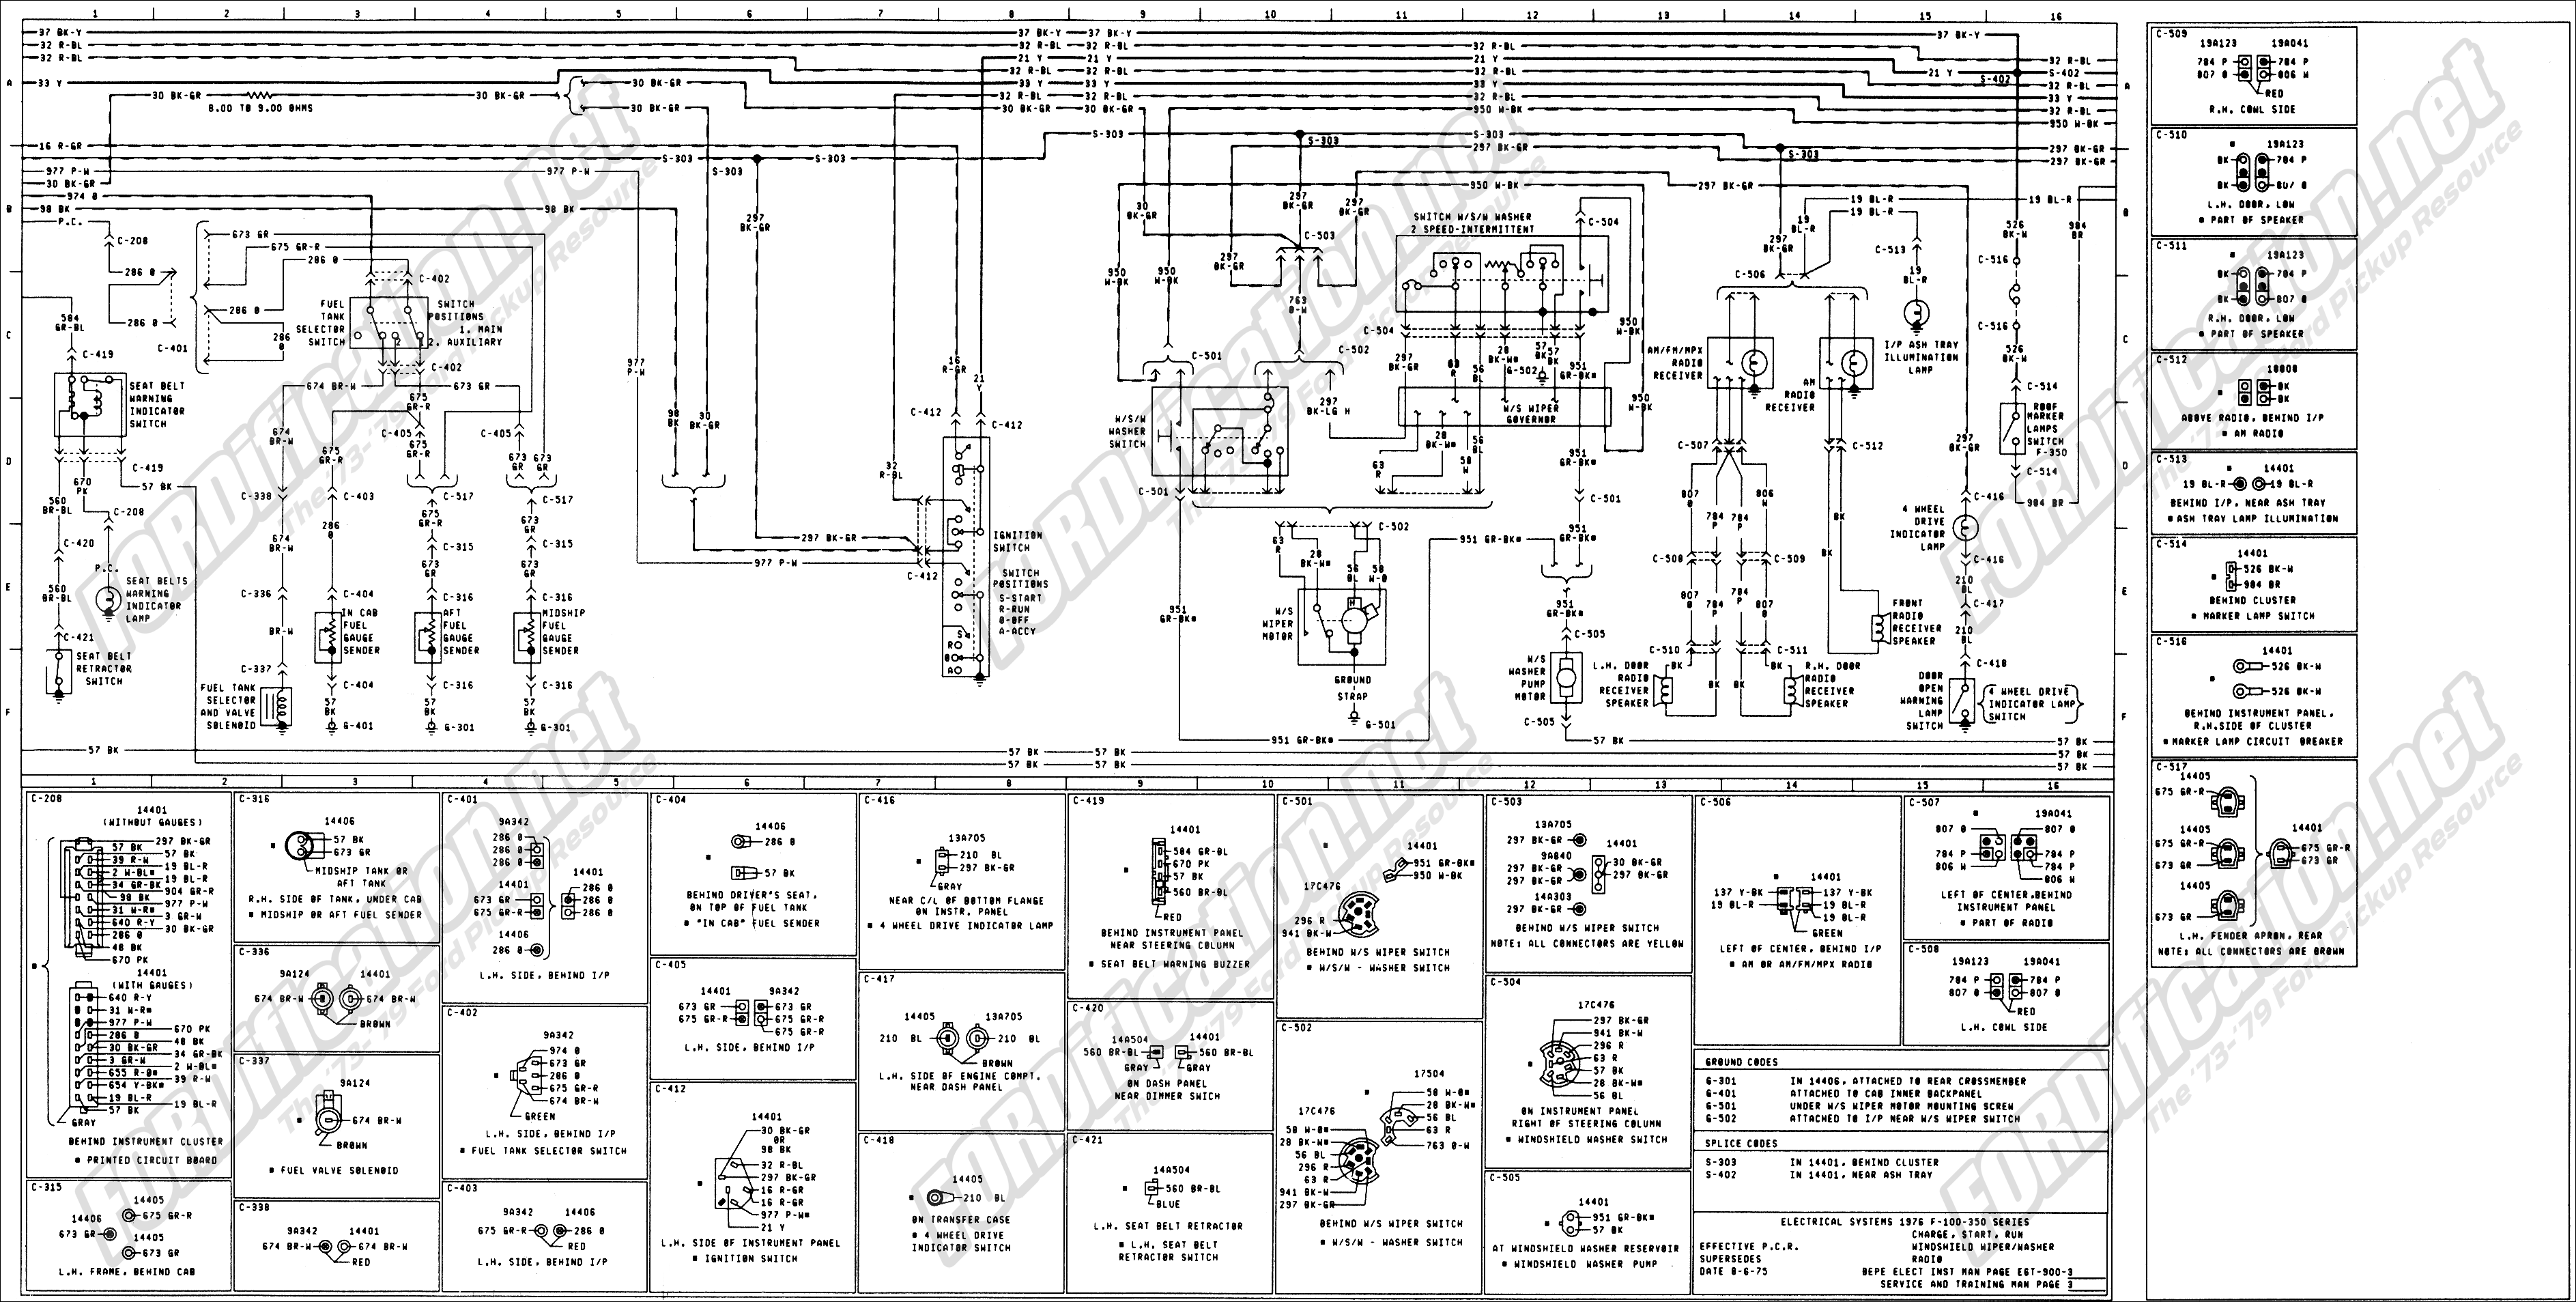 wiring_76master_3of9 1987 ford f 250 wiring diagram wiring diagram simonand 1979 ford f100 fuse box diagram at gsmportal.co